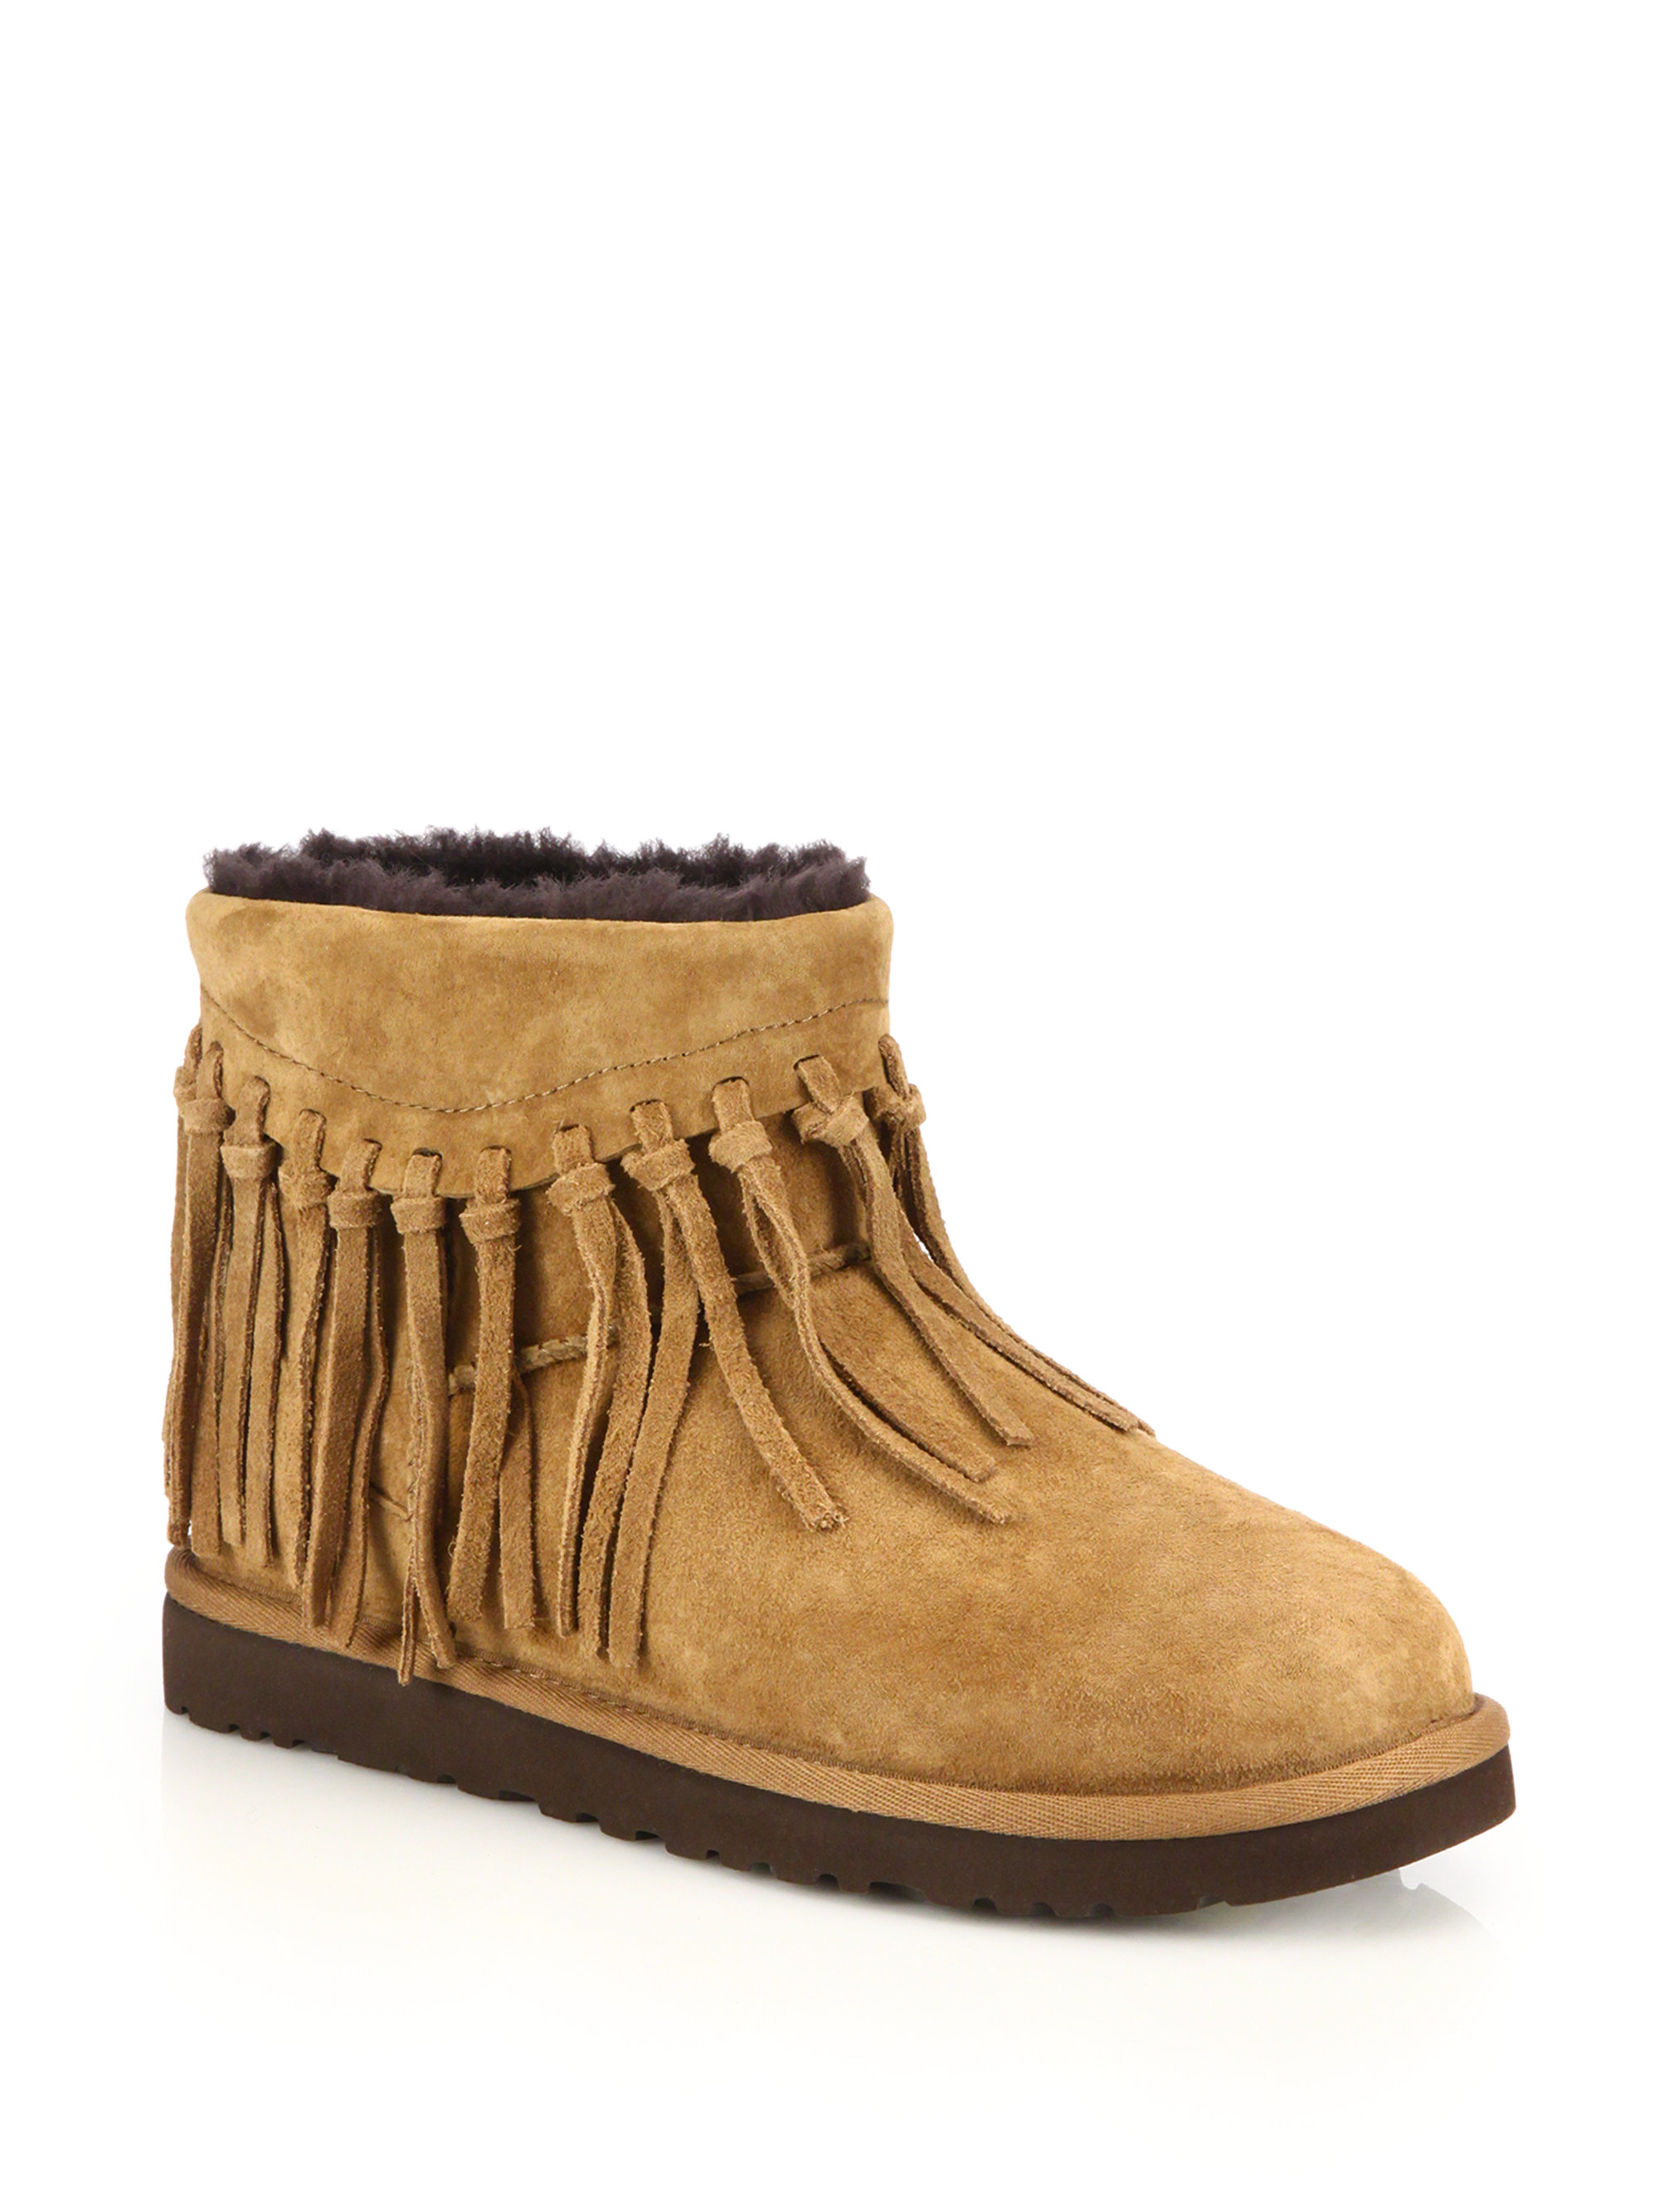 ugg wynona fringed suede boots in brown lyst